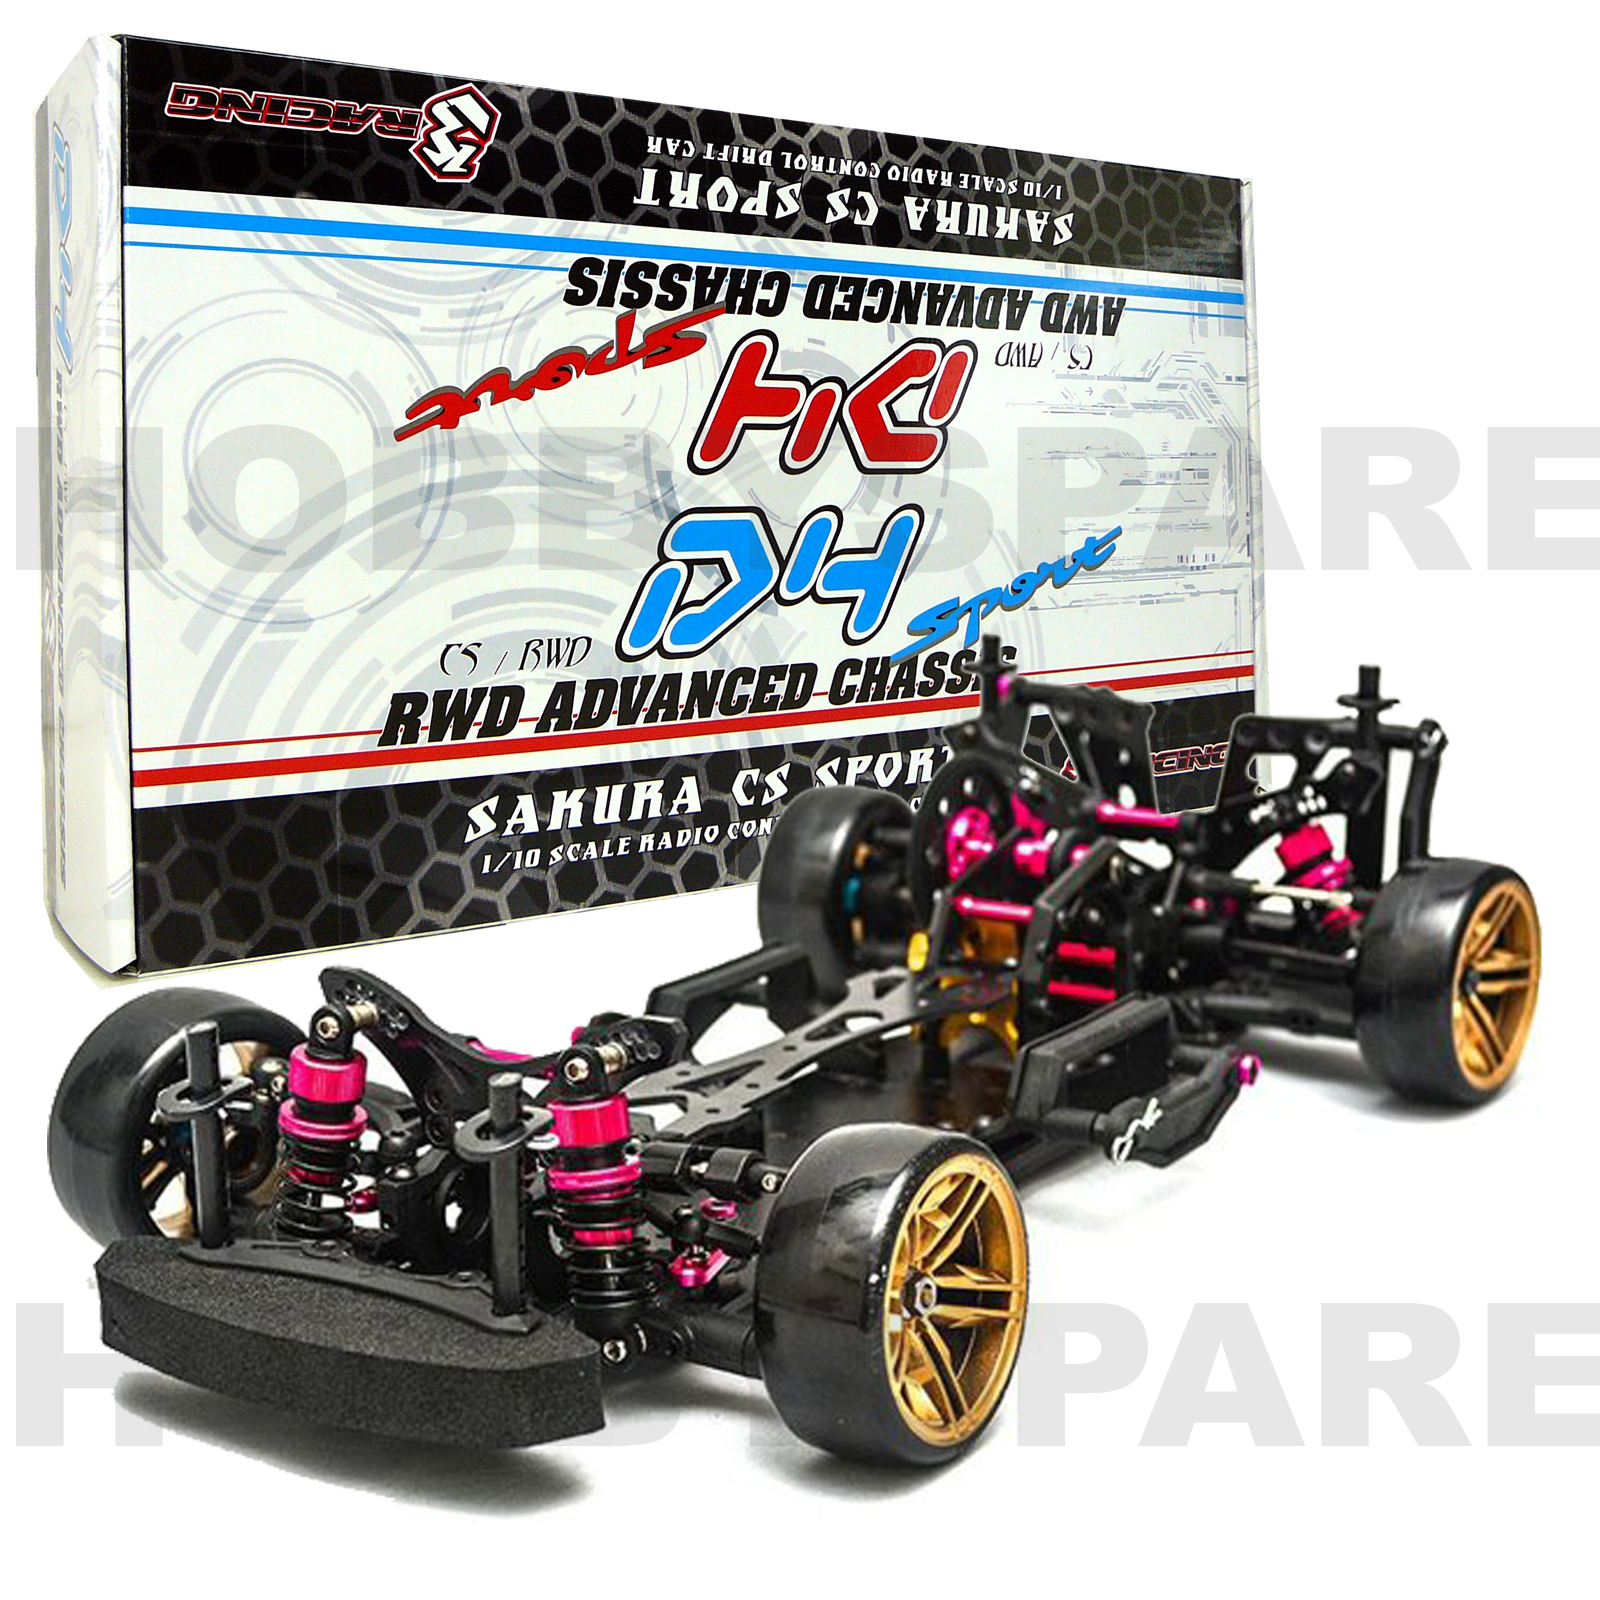 New Sakura Cs Rwd Advanced Rc Drift Car Chassis Kit